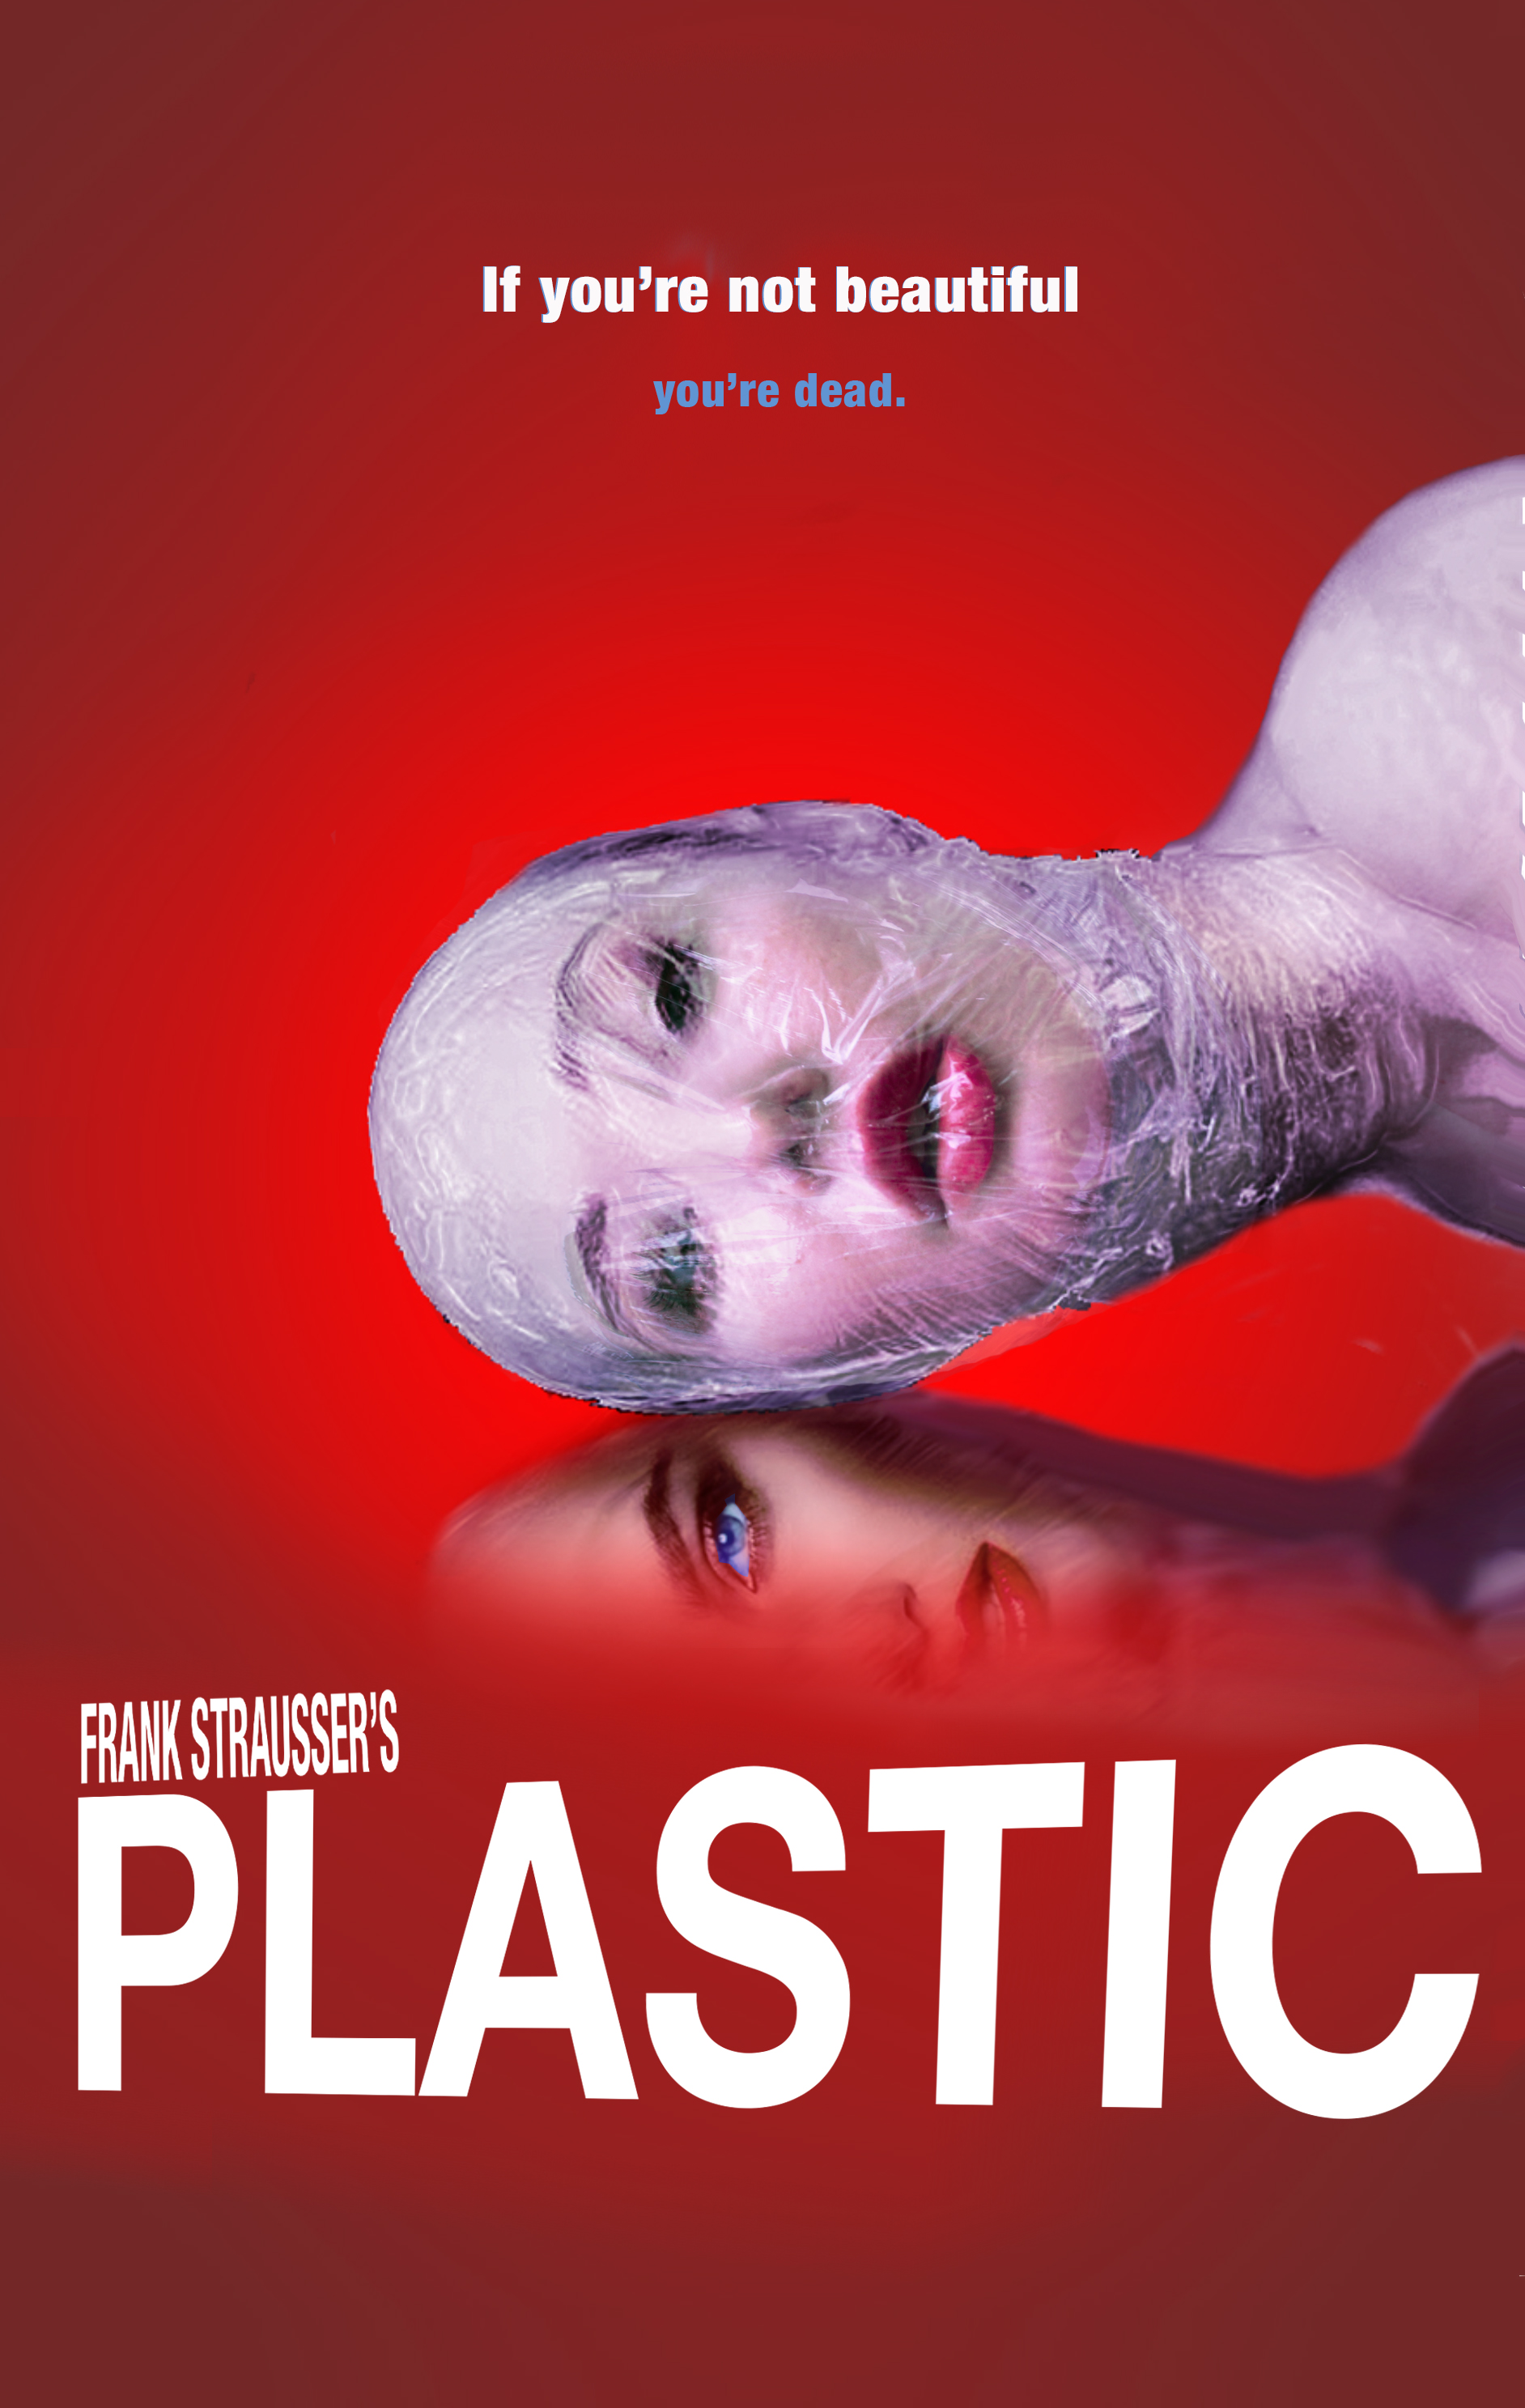 Plastic - A NOVEL BY FRANK STRAUSSERWhen a Beverly Hills plastic surgeon is called in after a beautiful pop star is brutally assaulted, he thinks his job is to restore her looks, but soon fears he's there to surgically erase all trace of the crime.Plastic is a novel of psychological suspense about some desperate Hollywood image makers who conspire to do the ultimate cover up. When Dr. Harry Previn fails to restore Fay Wray, the ravishingly beautiful nineteen year-old pop star at the center of this predicament, a conspiracy ensues to fake her death offering her Marilyn Monroe-like immorality, but of course if she's dead, she can't press criminal charges. For Previn, beauty has become a life or death proposition because his patients are literally dying to be beautiful. Plastic explores the ephemeral world of celebrity and beauty at the intersection of Hollywood and rock 'n roll.- RARE BIRD BOOKS -